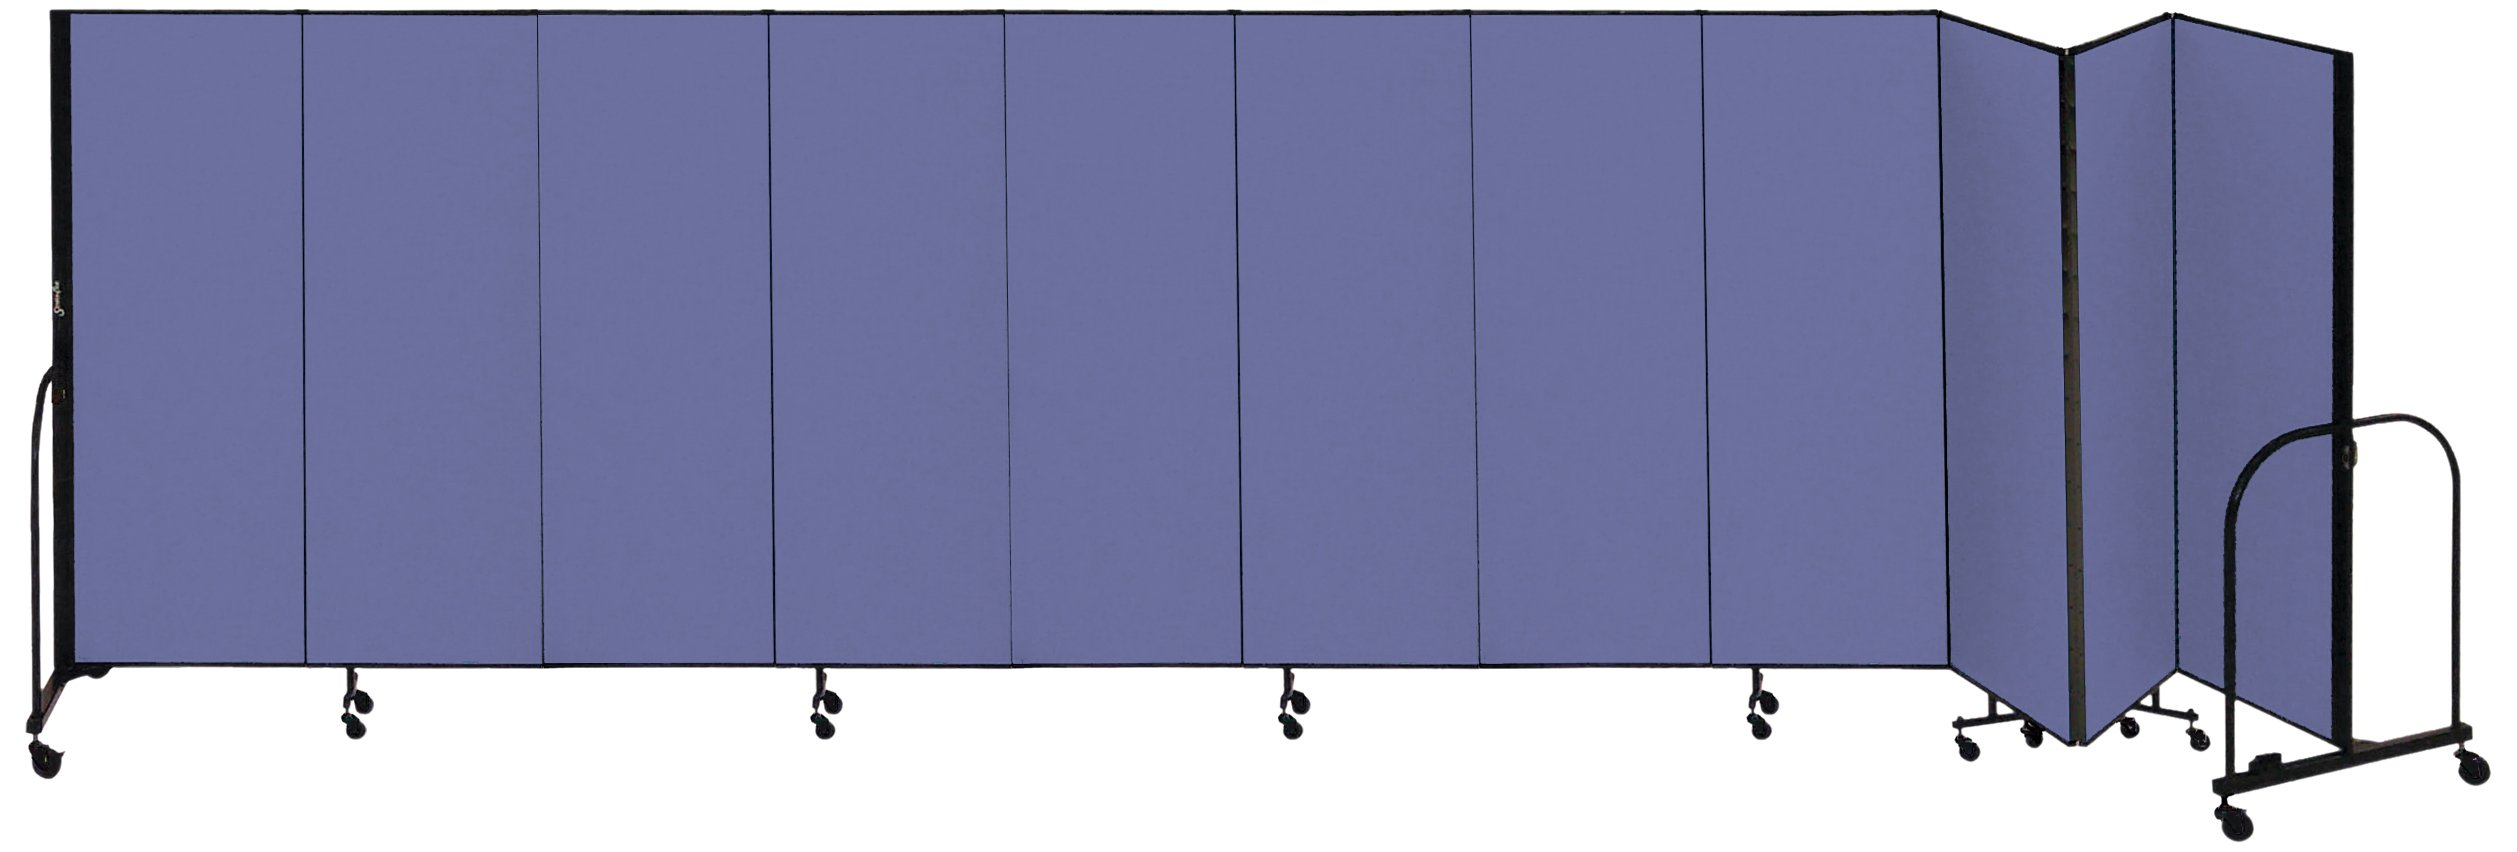 Screenflex Commercial Portable Room Divider (CFSL6011-DS) 6 Feet High by 20 Feet 5 Inches Long, Designer Blue Fabric